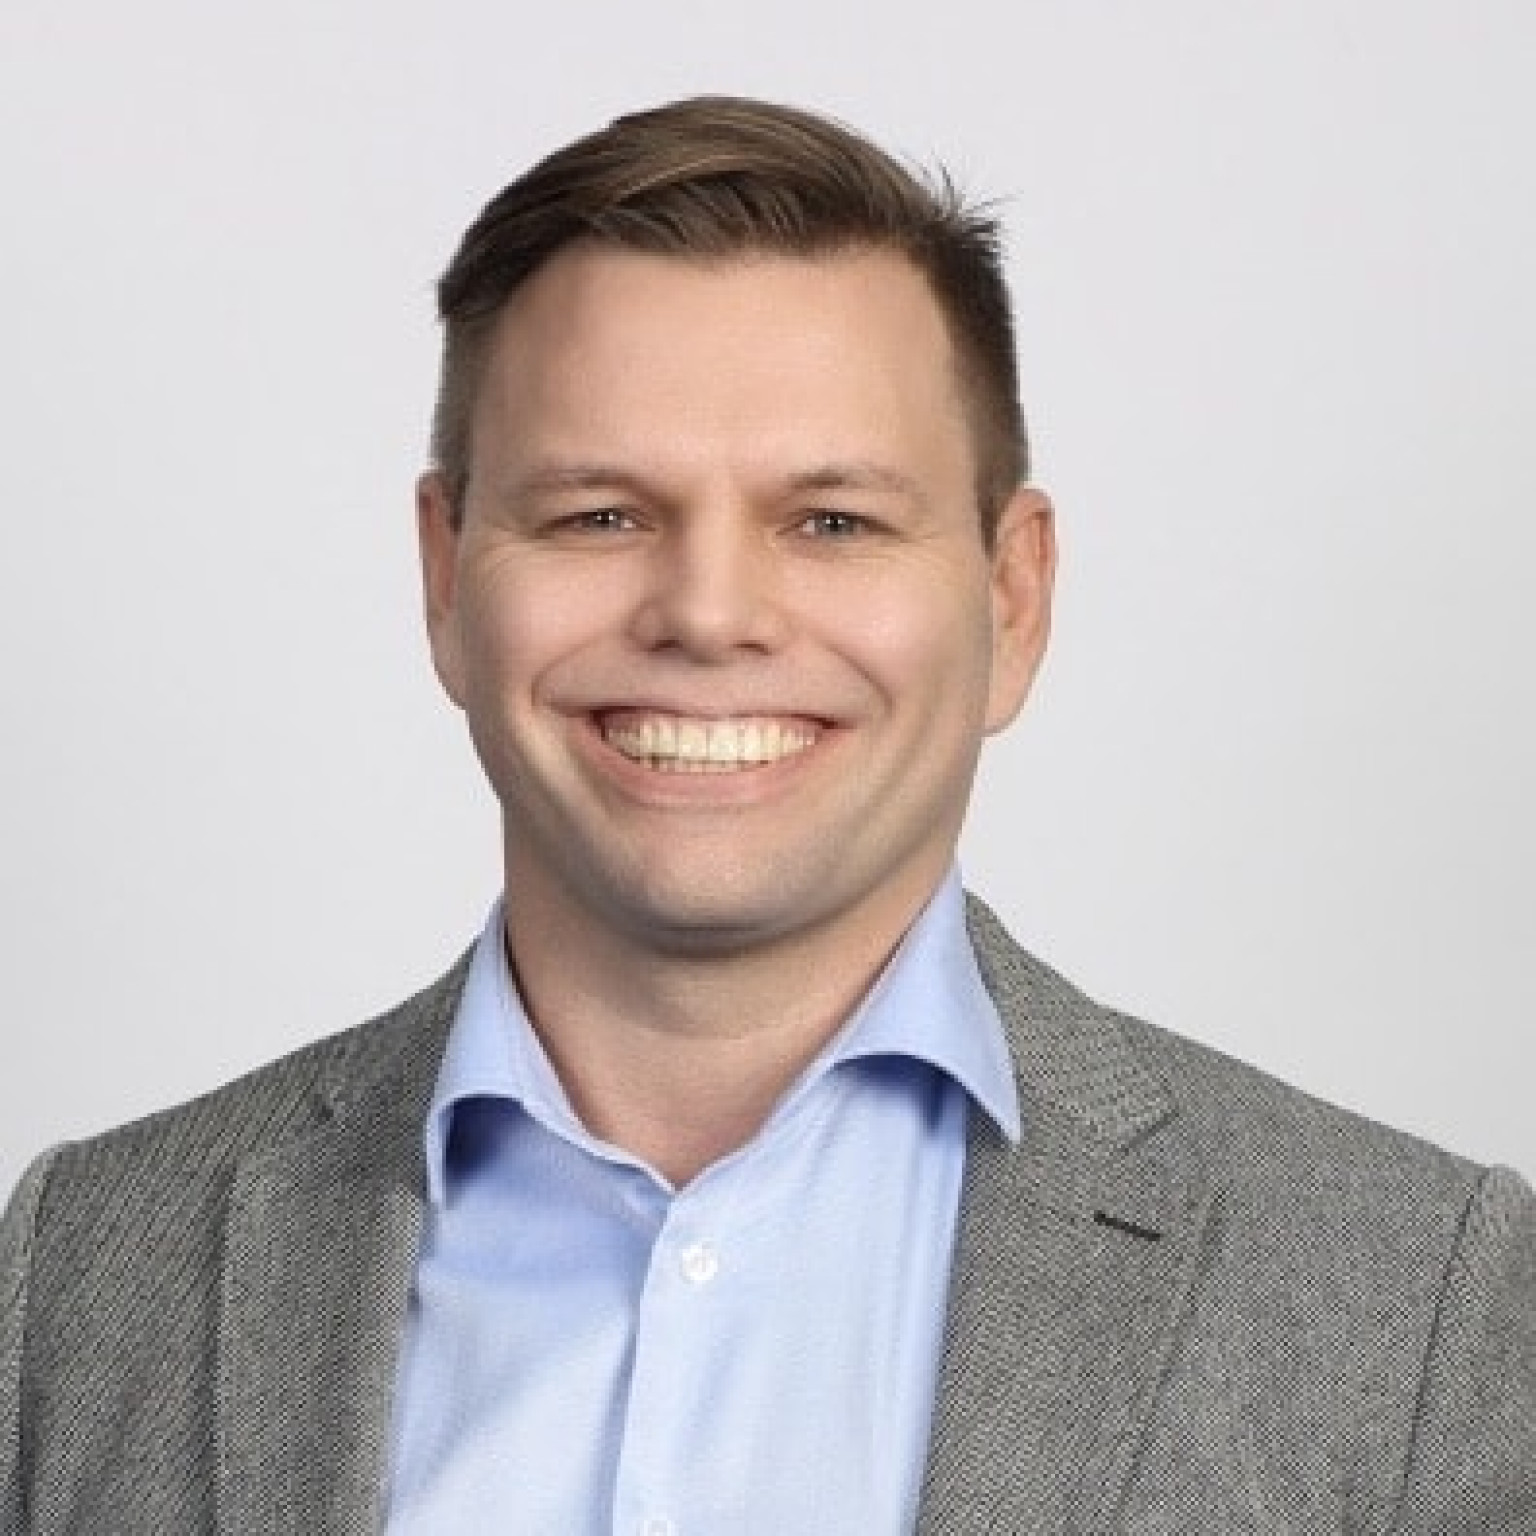 Picture of Kimmo Rytkönen the CEO of Income Marketplace